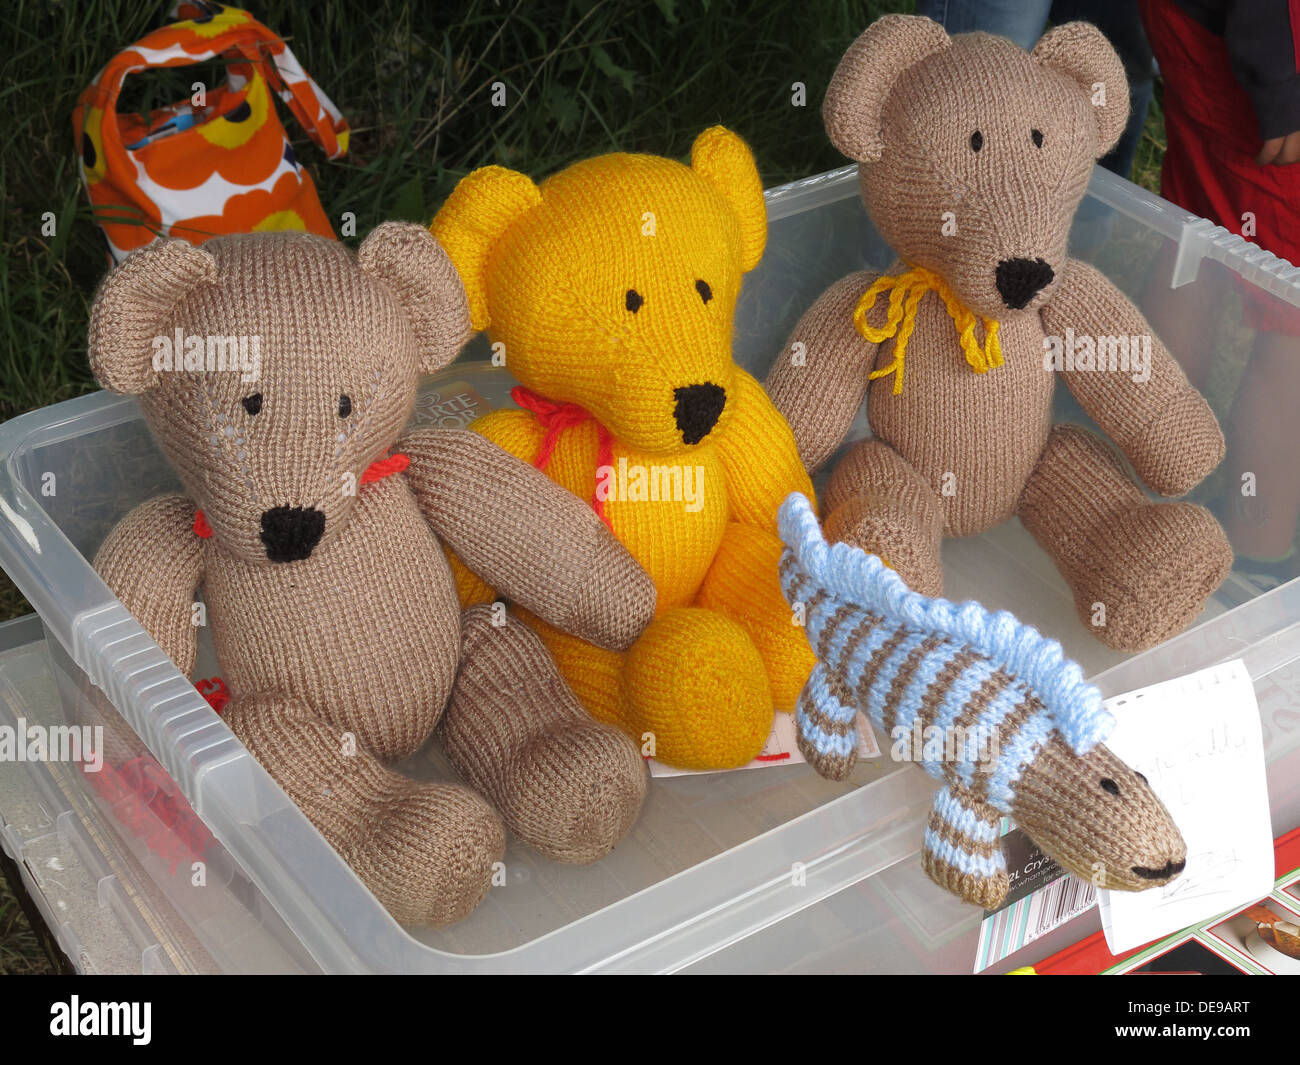 Hand knitted craft bears on sale at a charity fayre, Cheshire, England,UK Stock Photo